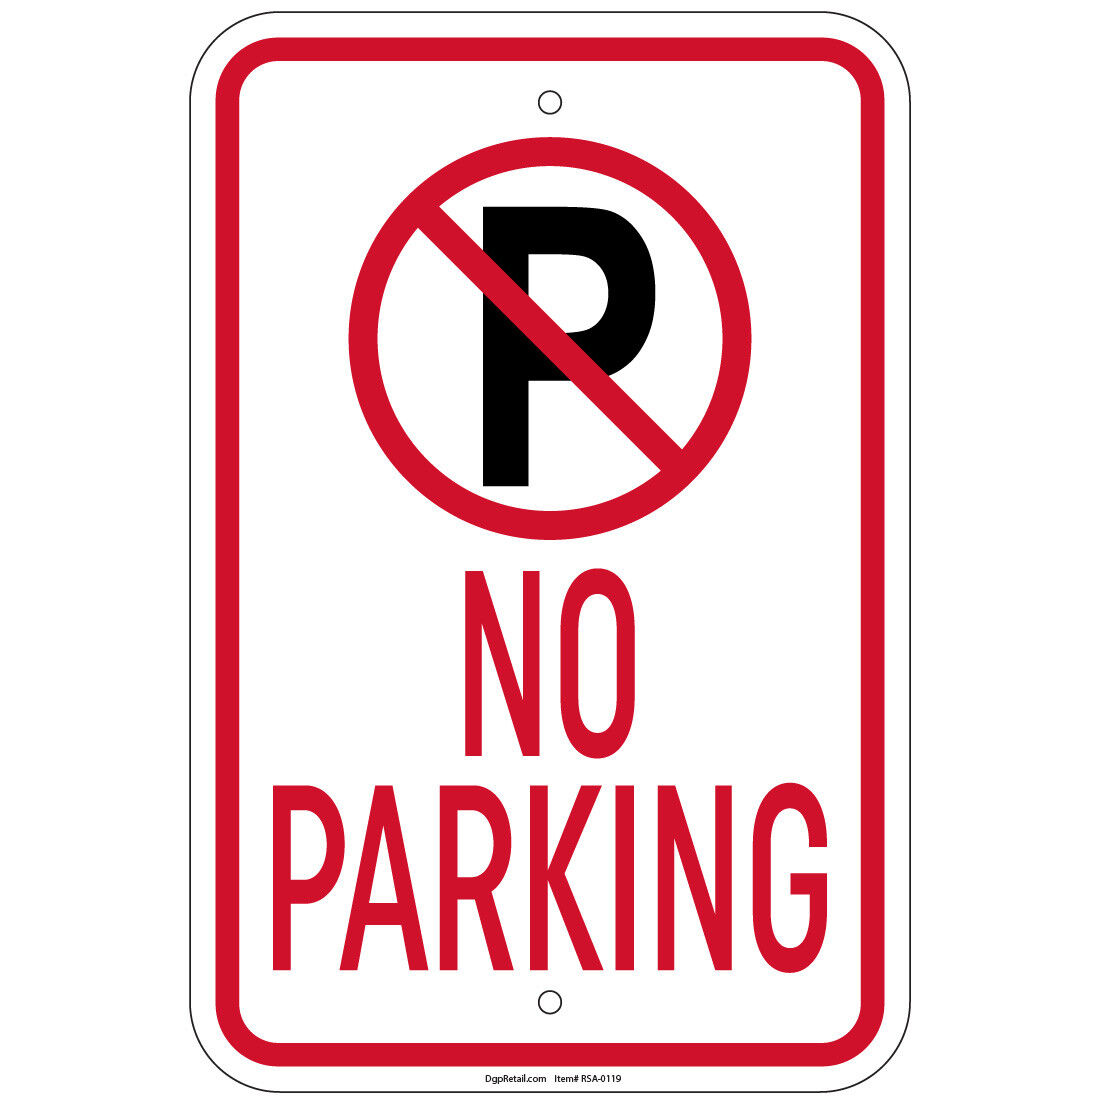 S10 Blazer Parking Only All Others Man Cave Novelty Garage Aluminum Metal Sign